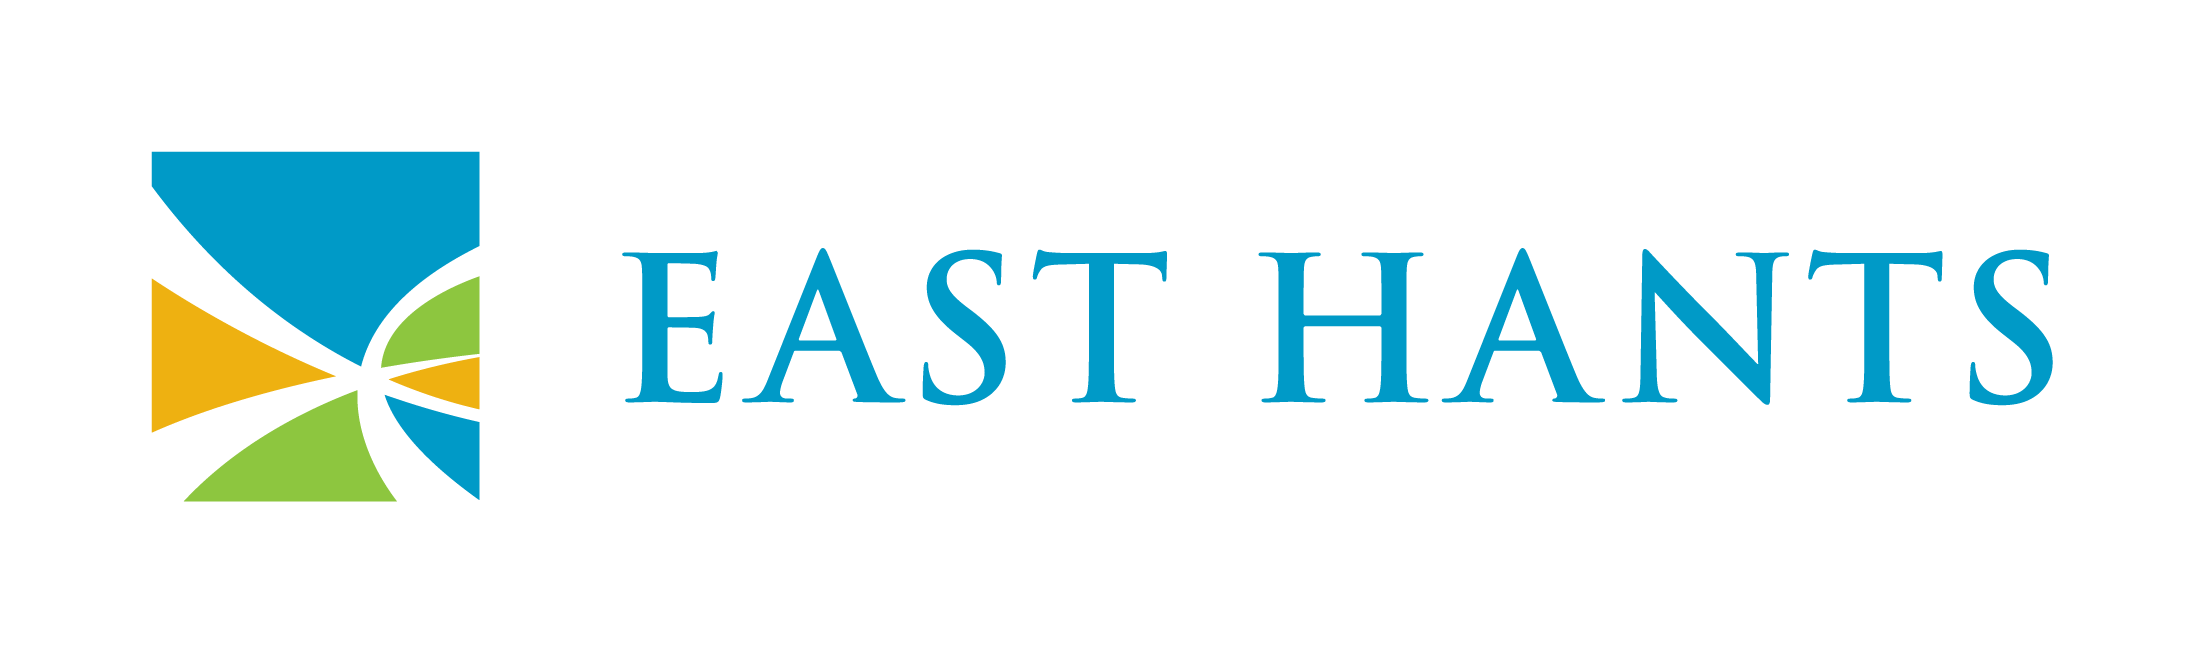 East Hants Logo.png